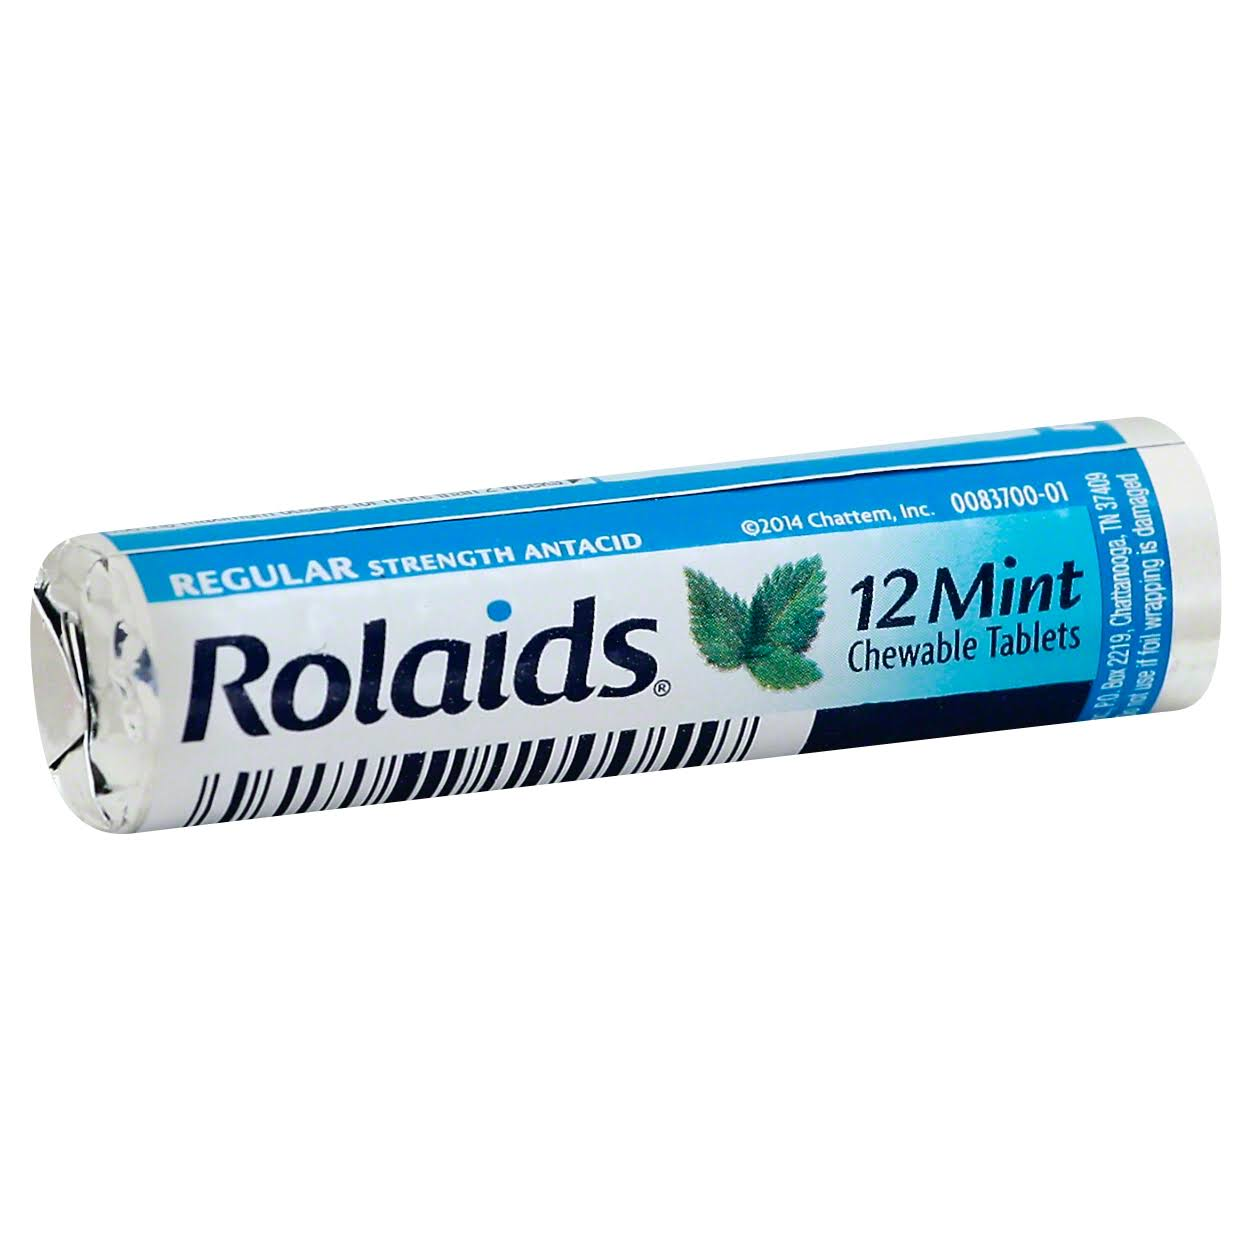 Rolaids Antacid Regular Strength Mint - Chewable, 12 Tablets